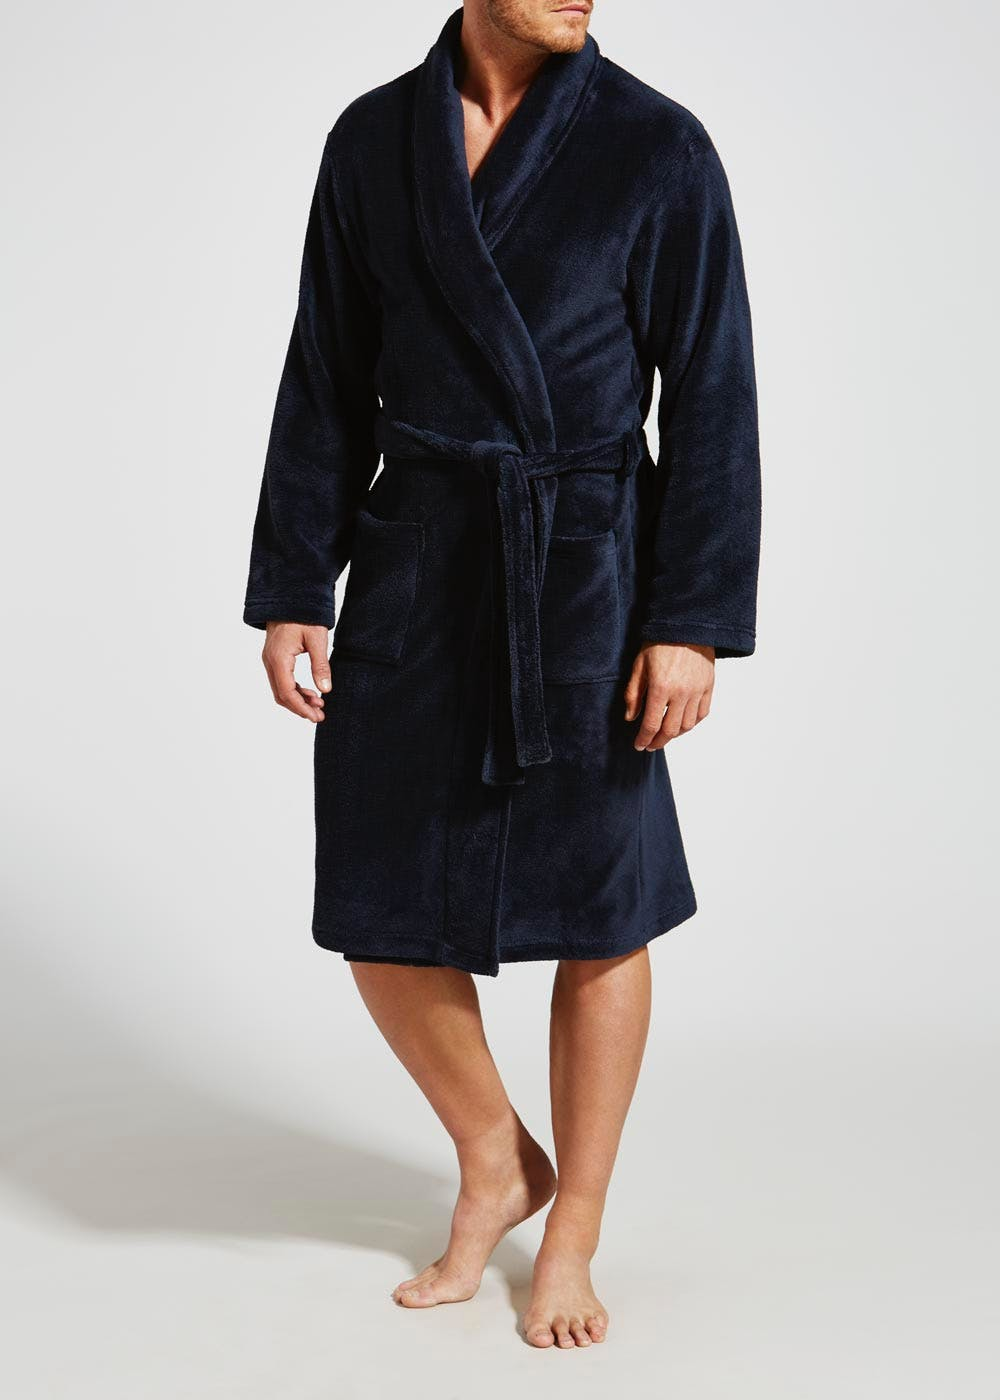 Tesco mens towelling robe Men's Dressing Gowns in Clothing & Accessories on optimizings.cf: Compare prices on Tesco mens towelling robe Men's Dressing Gowns from hundreds of stores and buy from Clothing & Accessories stores, rated and certified .